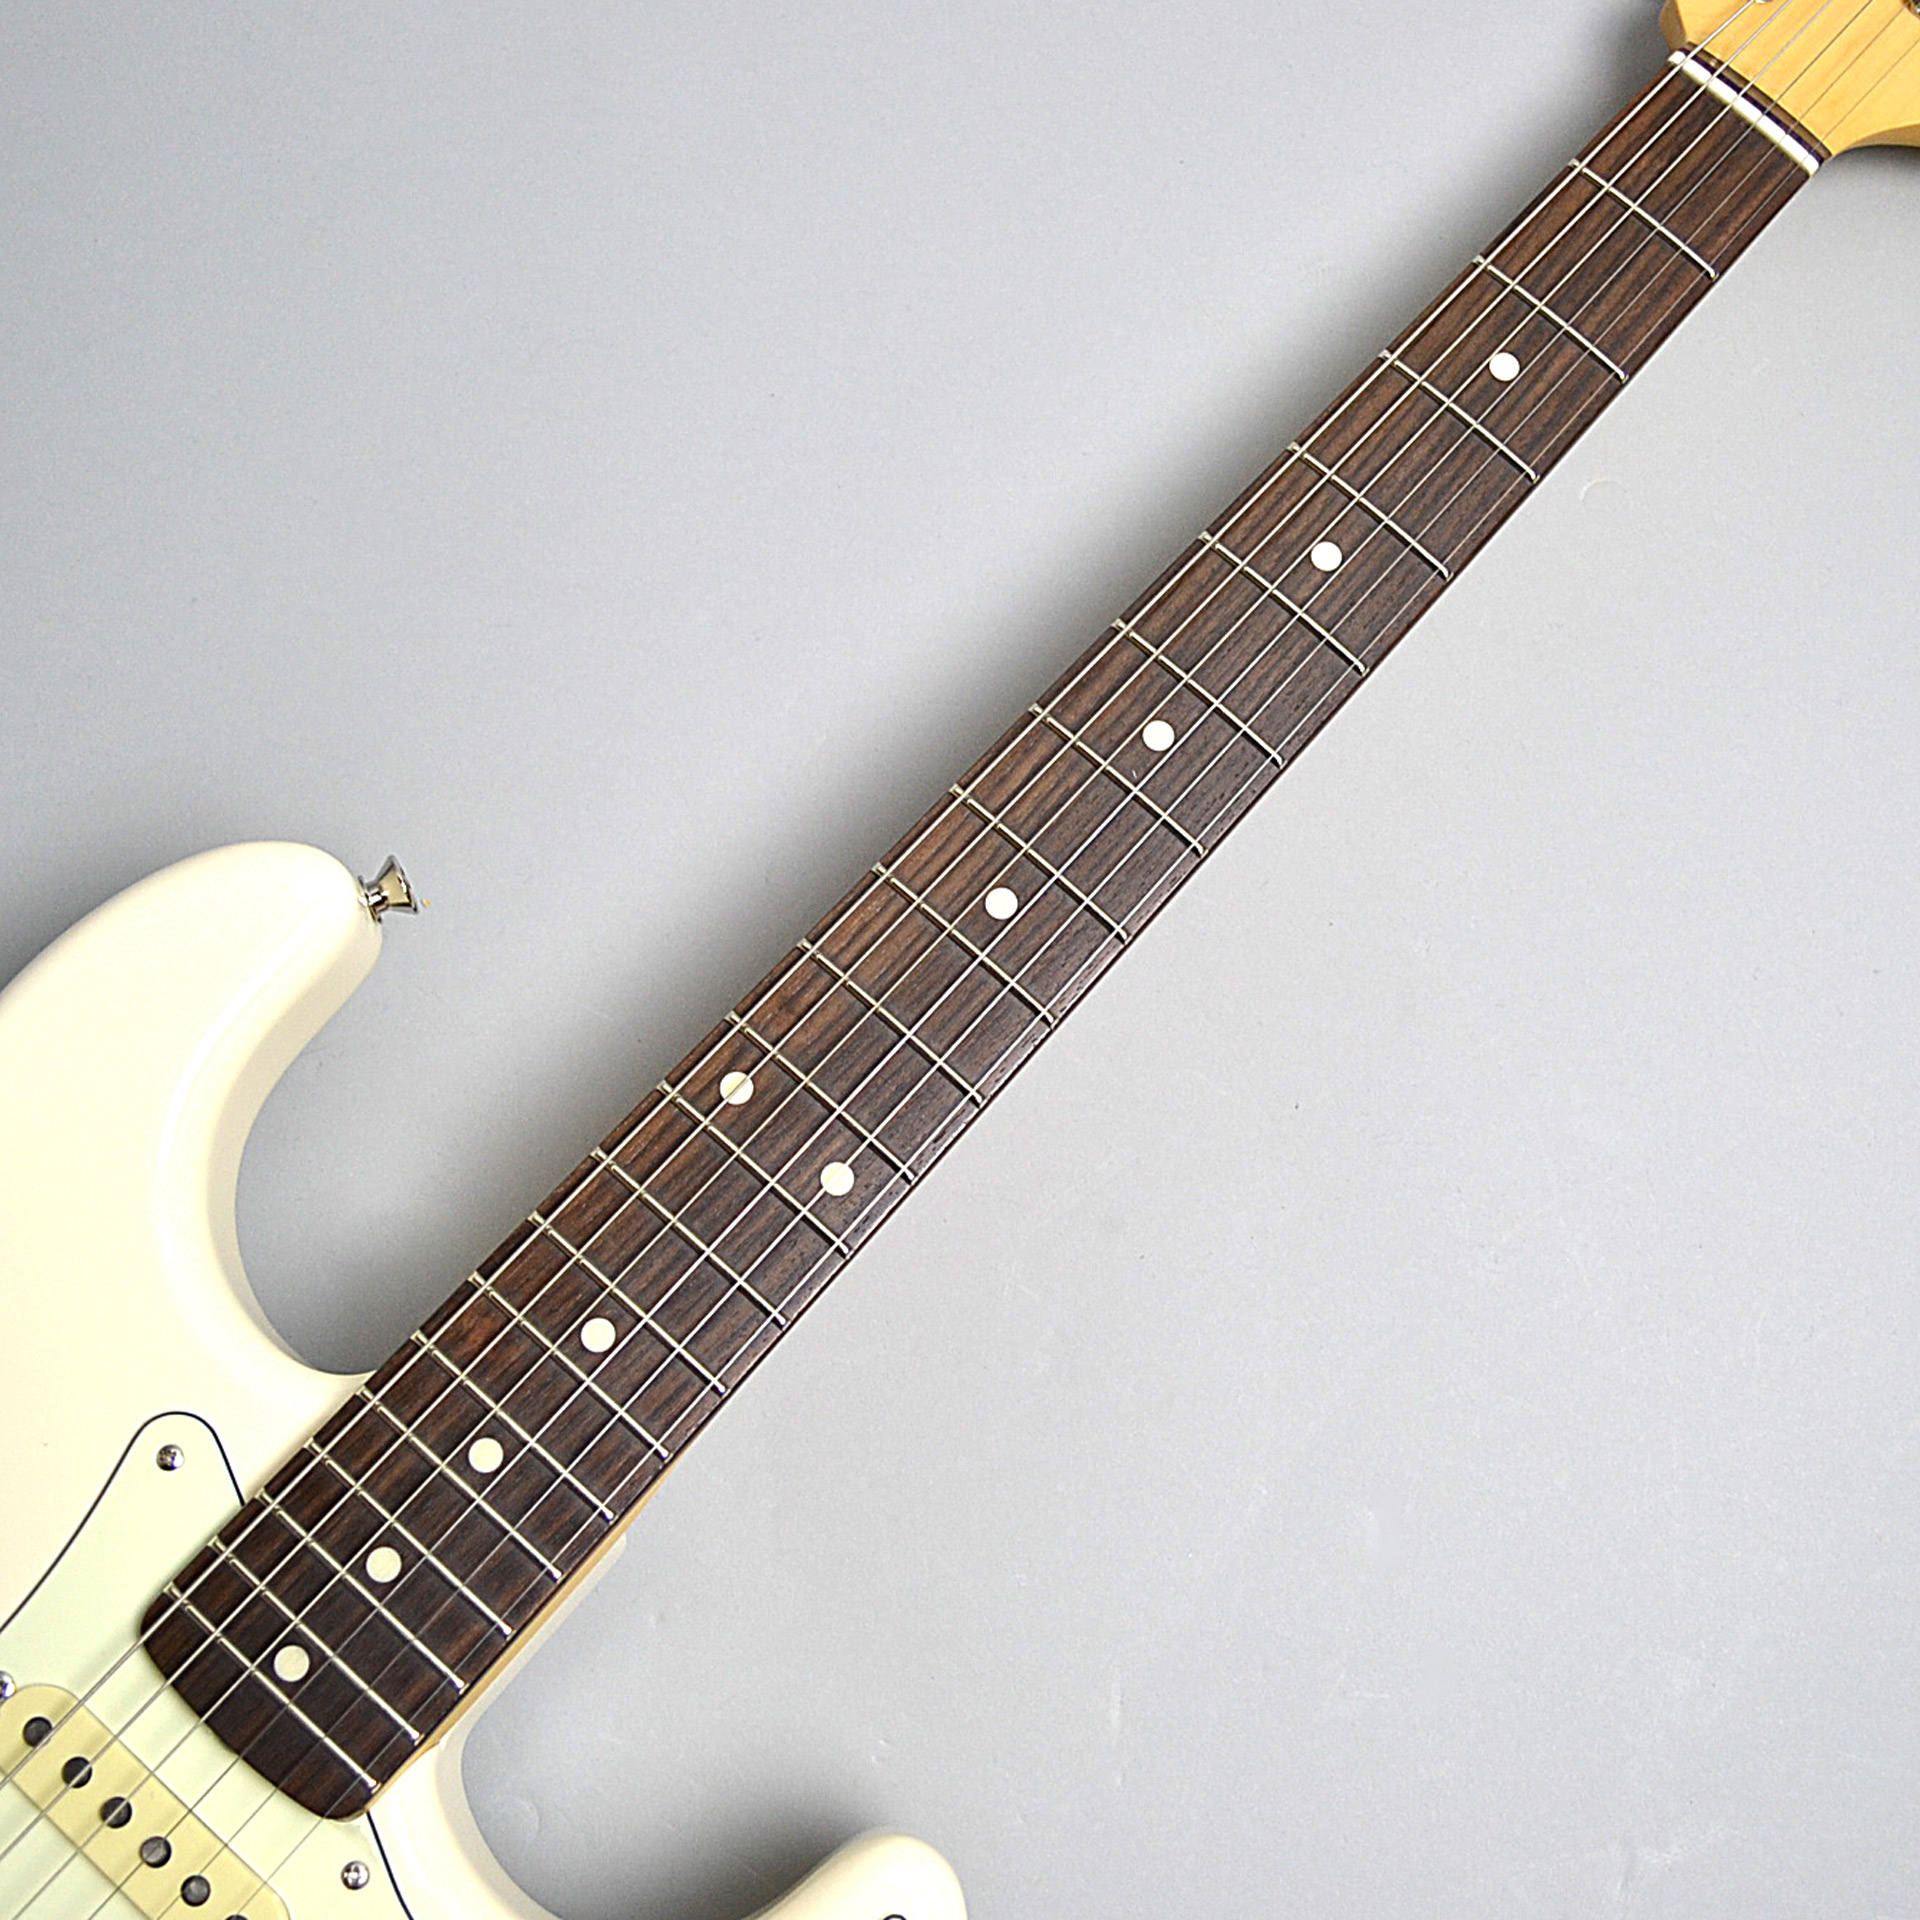 MADE IN JAPAN HYBRID 60S STRATOCASTERの指板画像